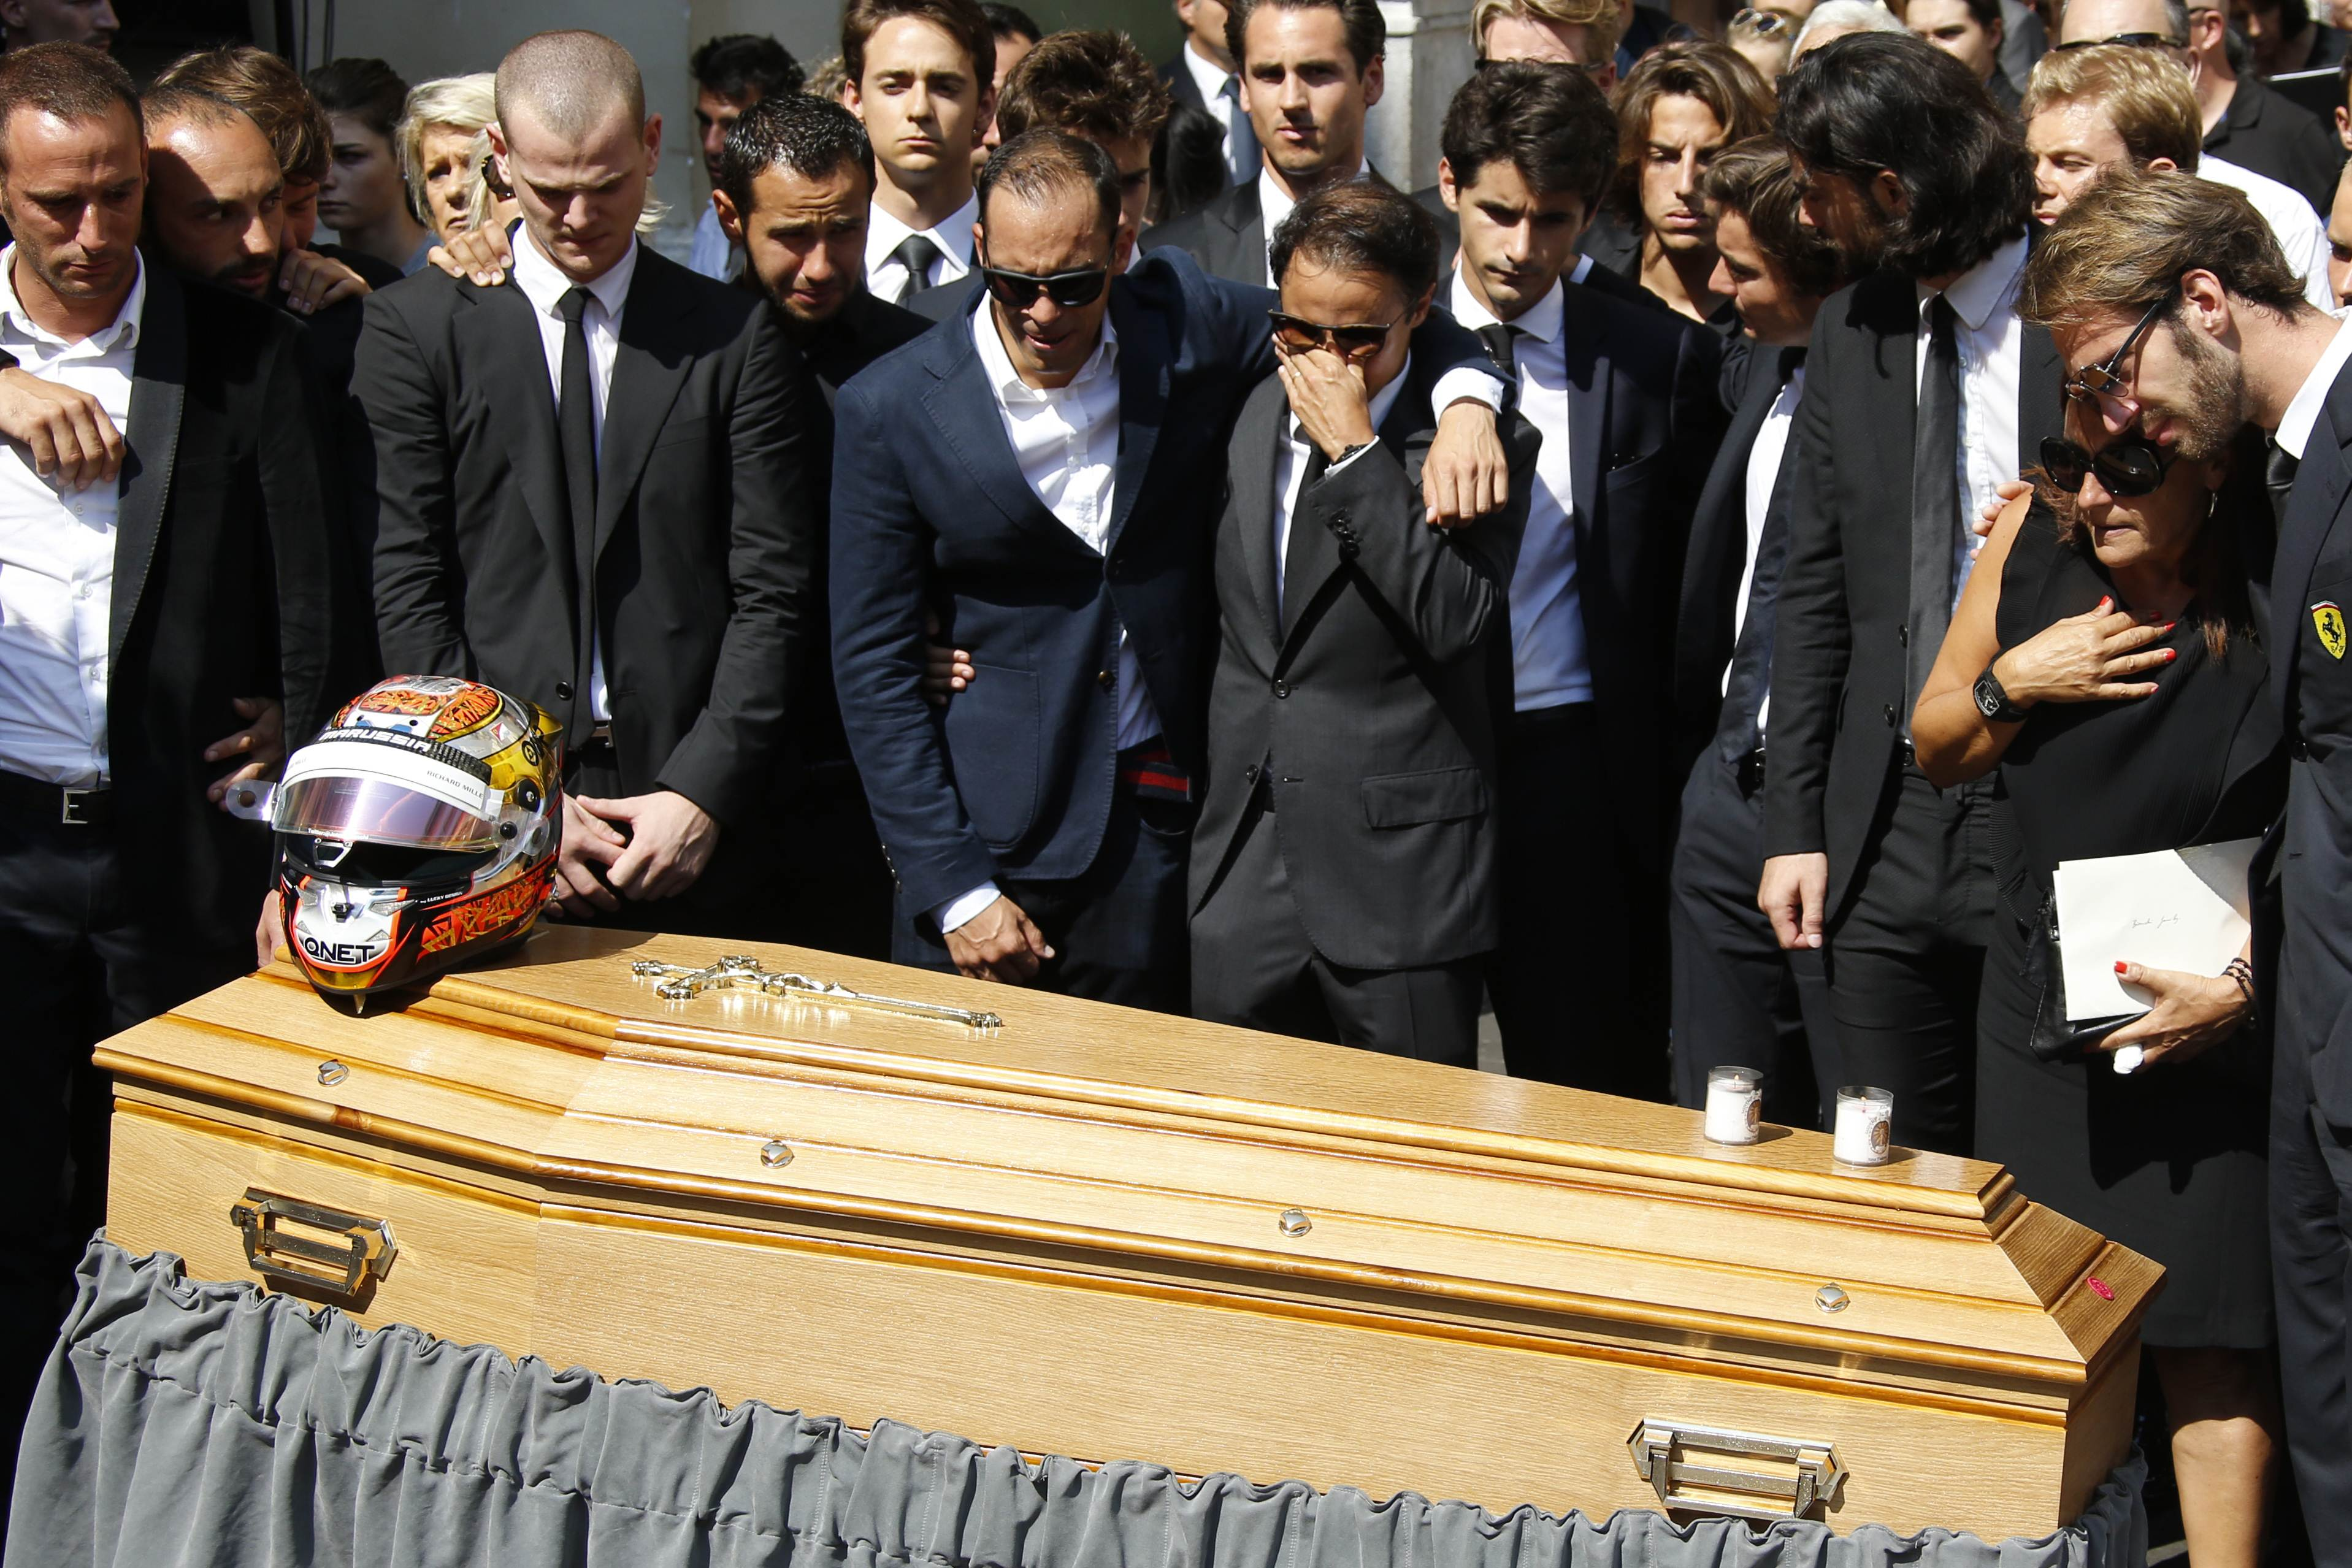 Formula One drivers, friends and relatives stand by Jules Bianchi's coffin after his funeral ceremony in Nice on Tuesday. Photo: AFP